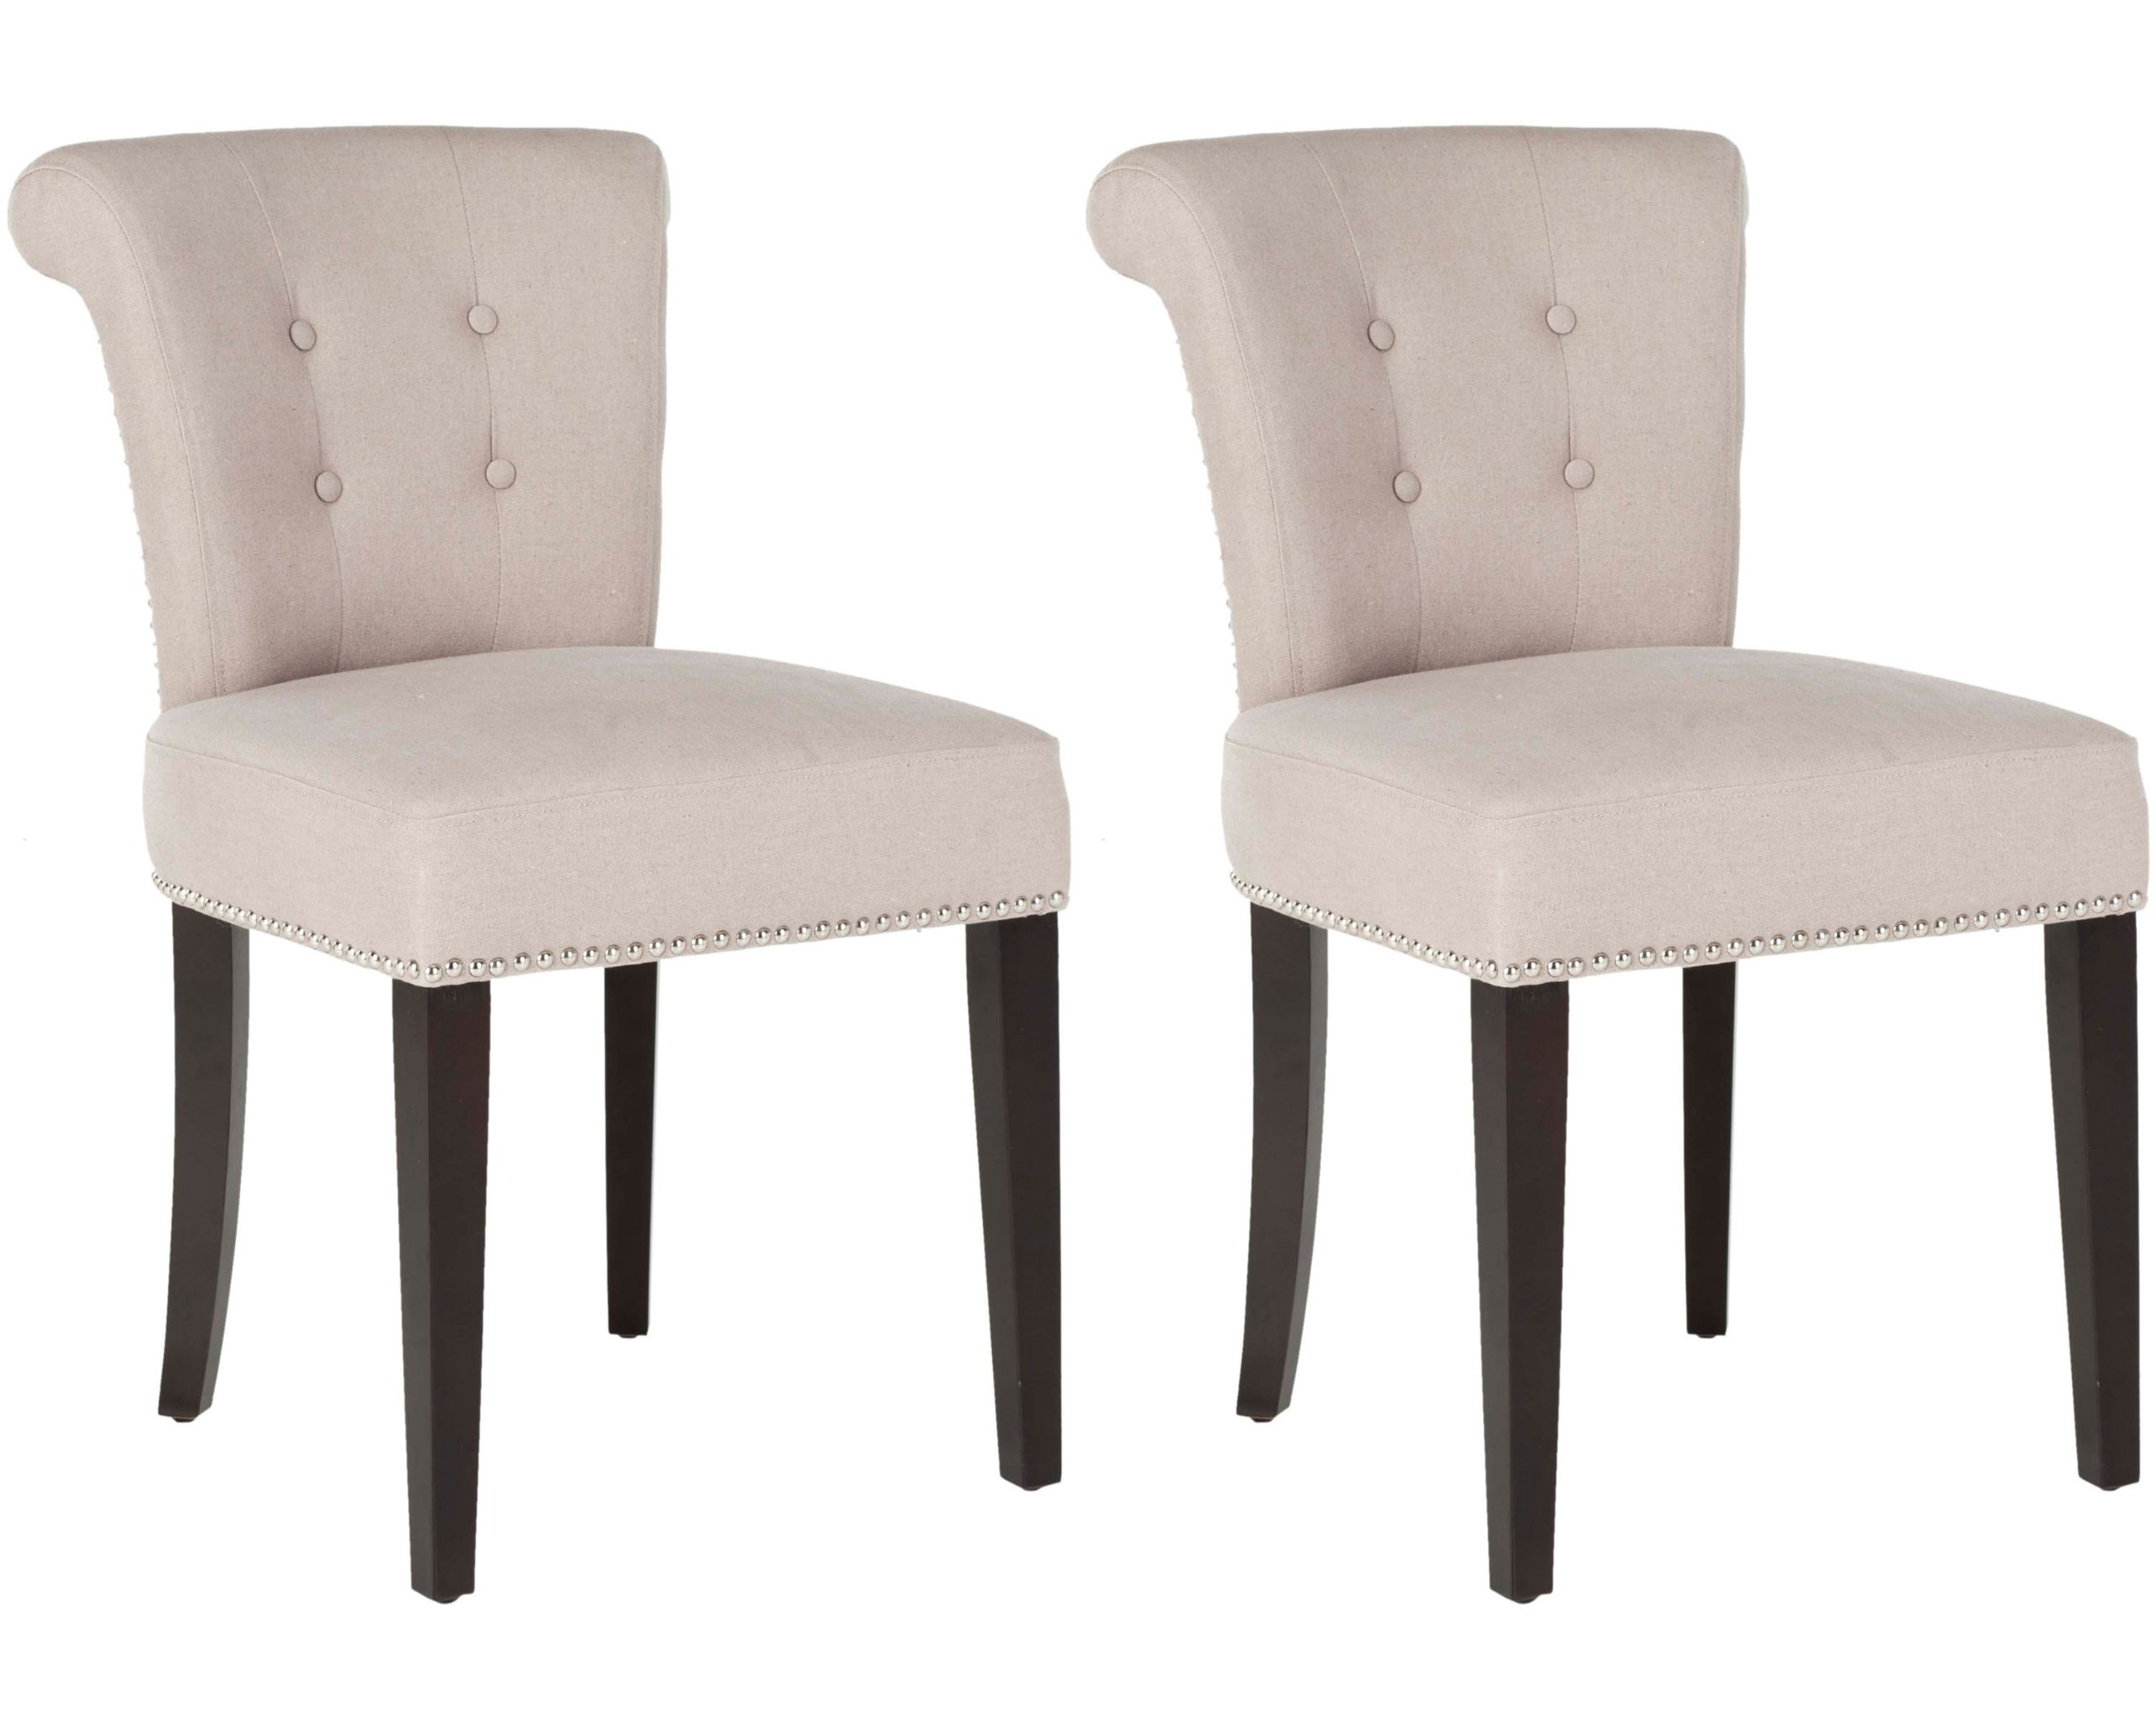 Safavieh Mercer Collection Carol Taupe Linen Ring Dining Chair, Set Of 2